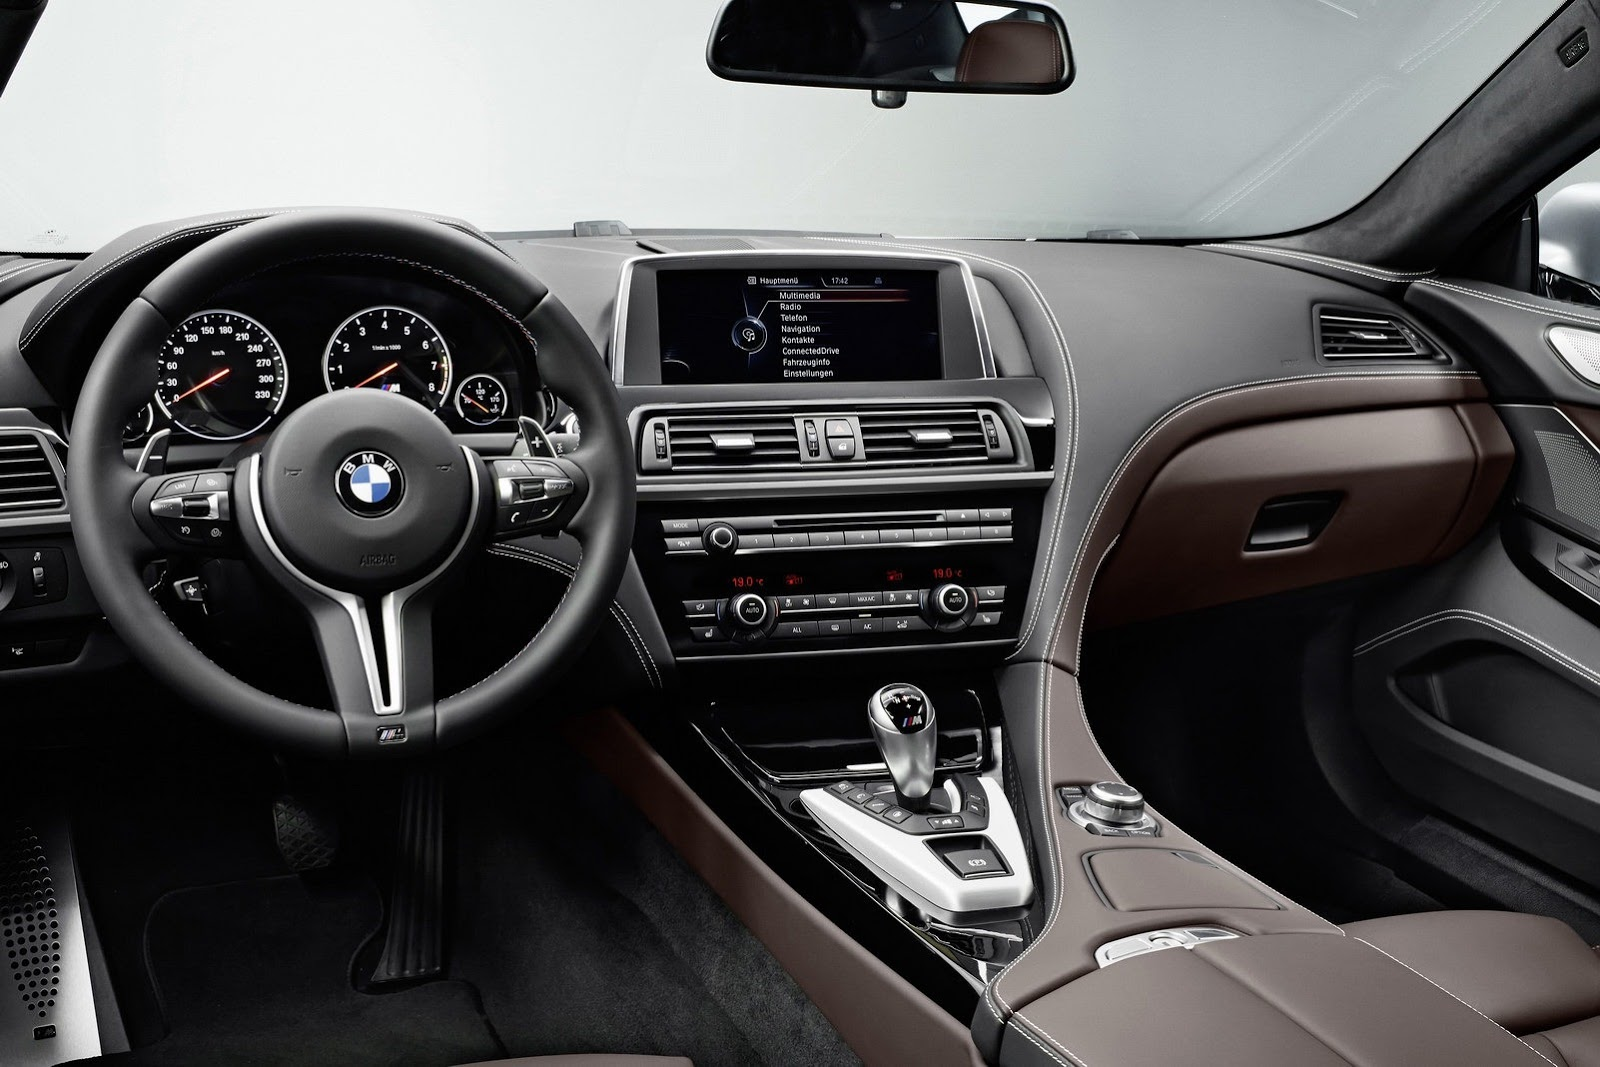 100 Reviews Bmw M6 Coupe Specs on margojoyocom